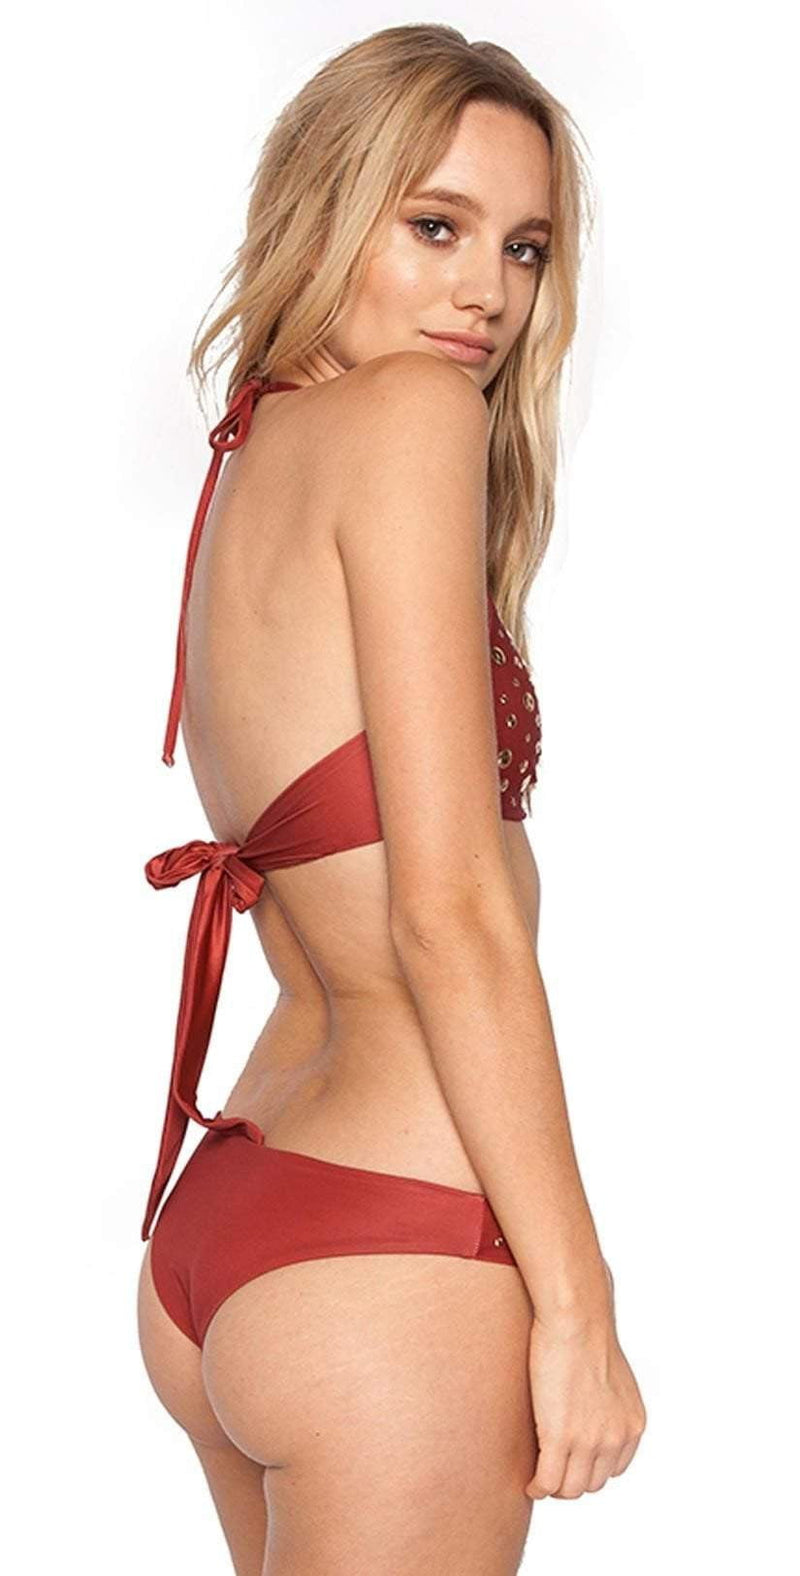 Beach Riot Madison High Neck Studded Halter Top In Sienna ASIEHT-SIE: